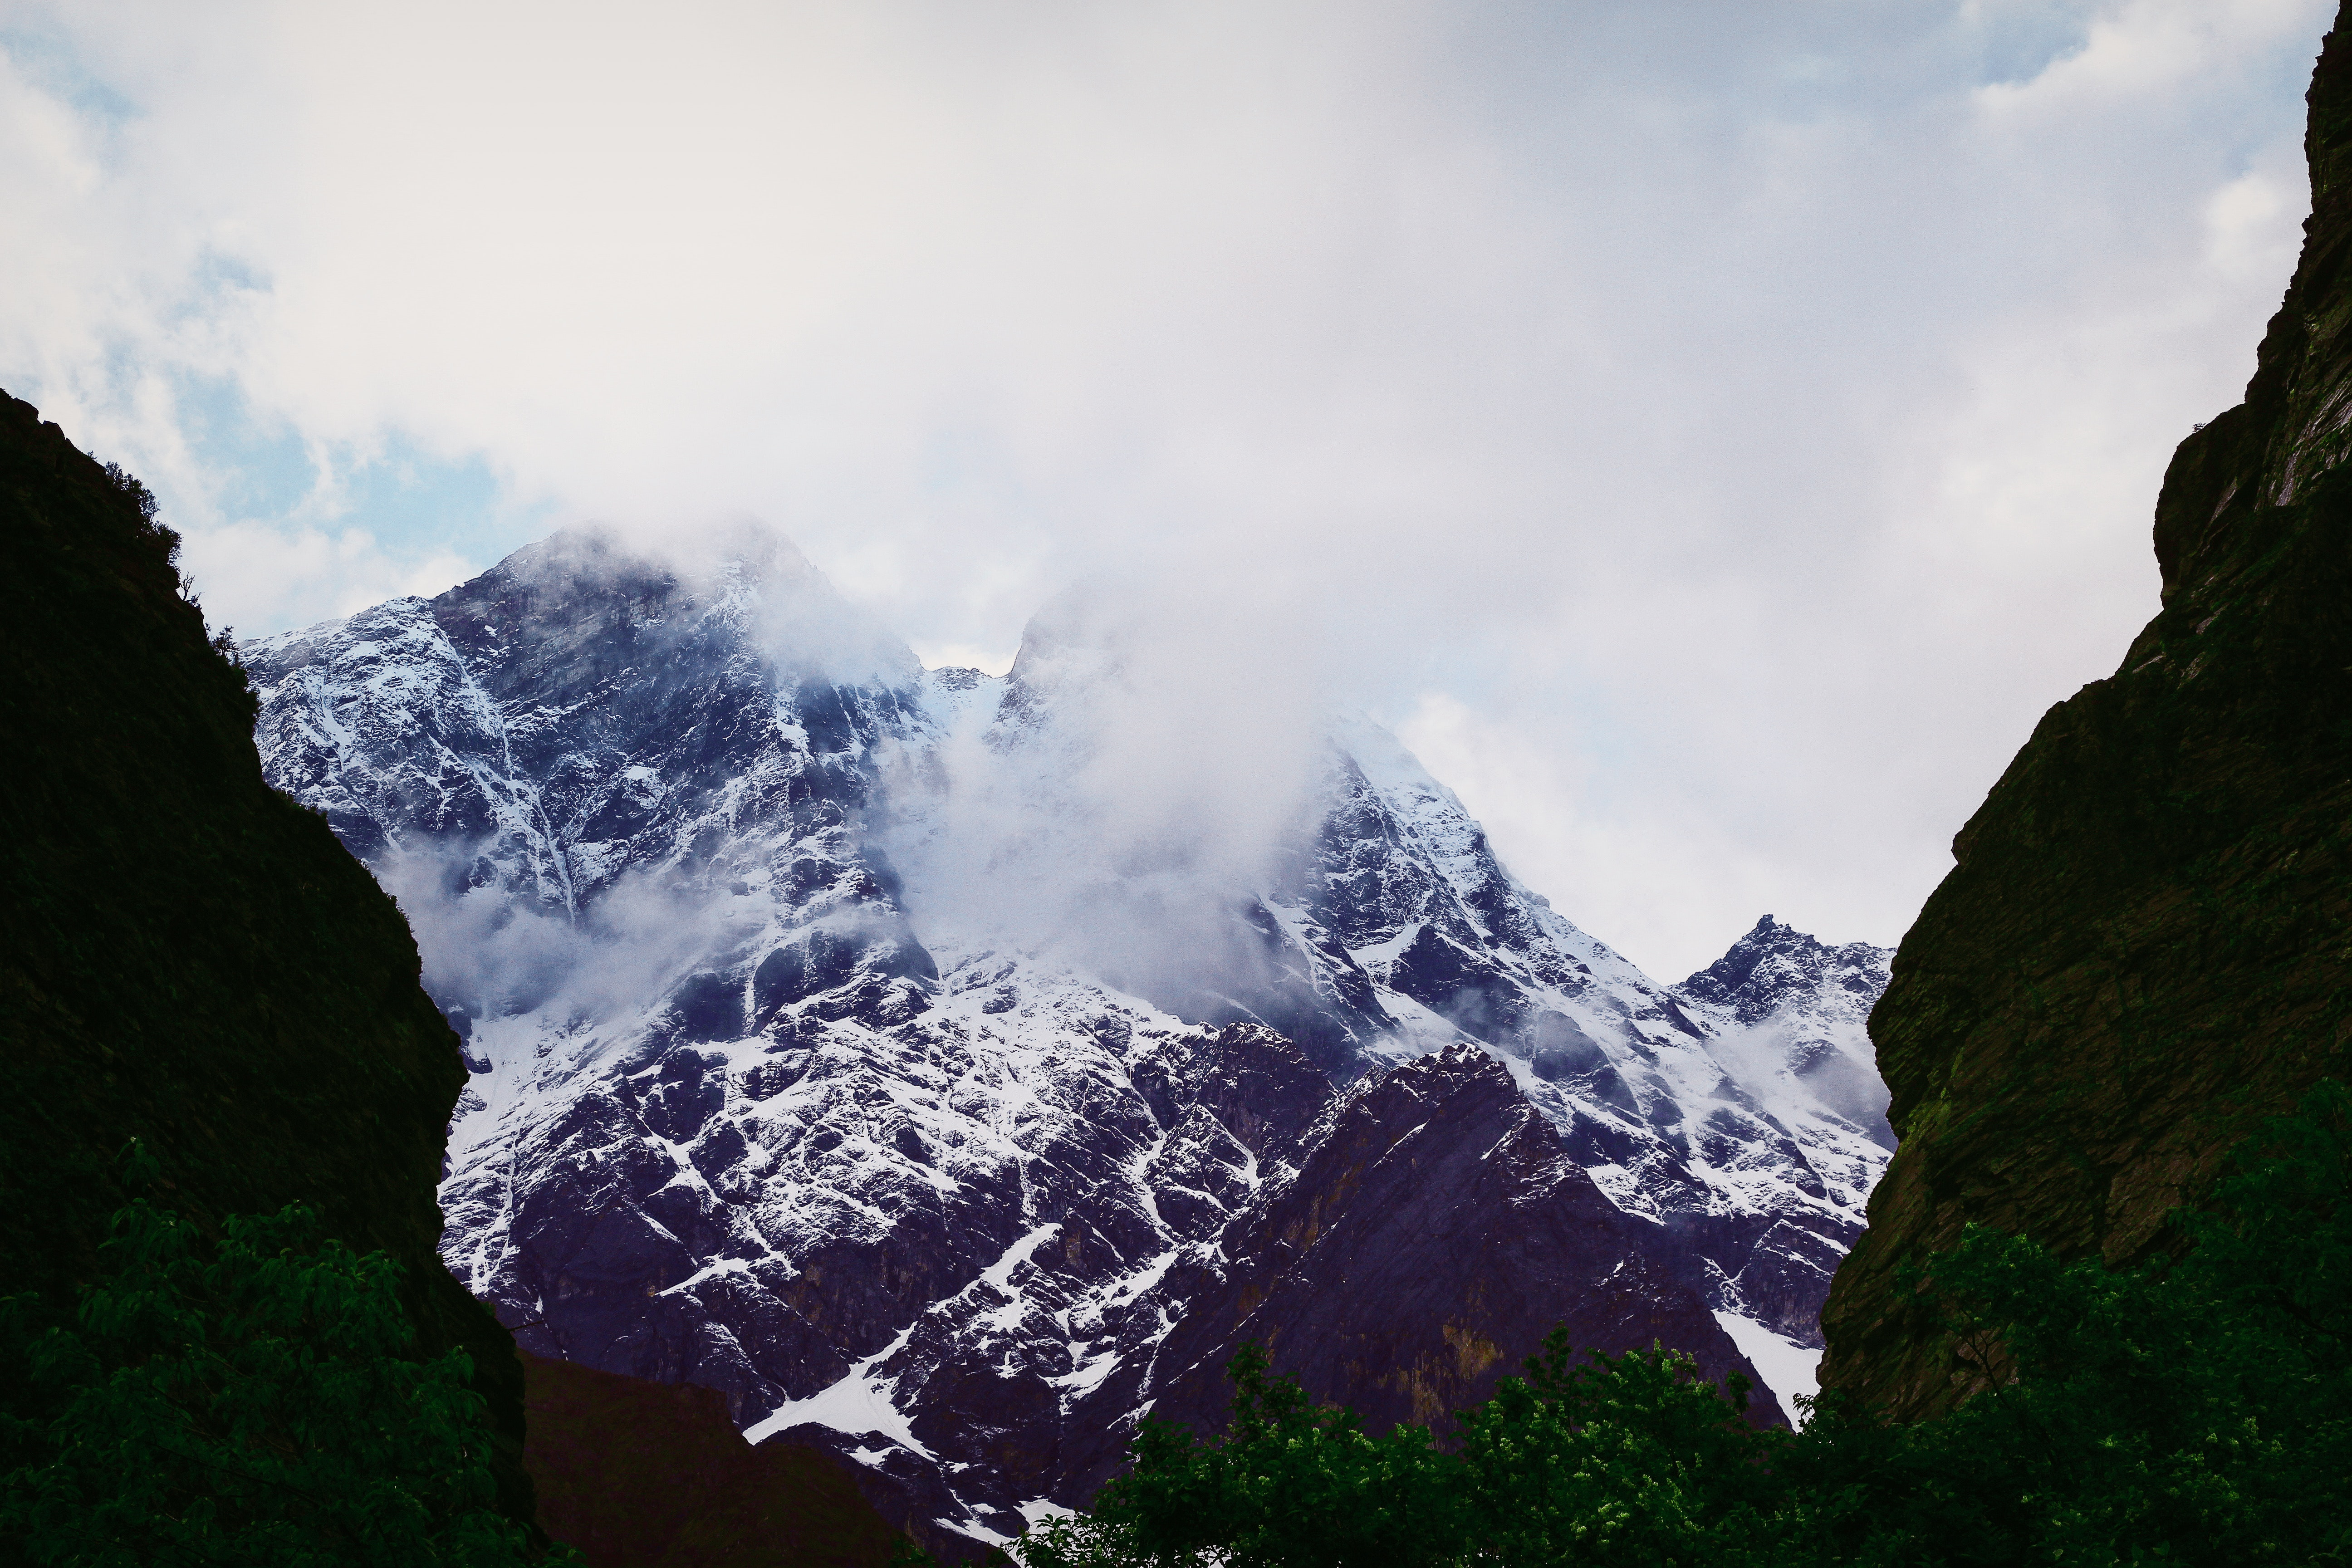 Snow covered mountain under cloudy sky photo